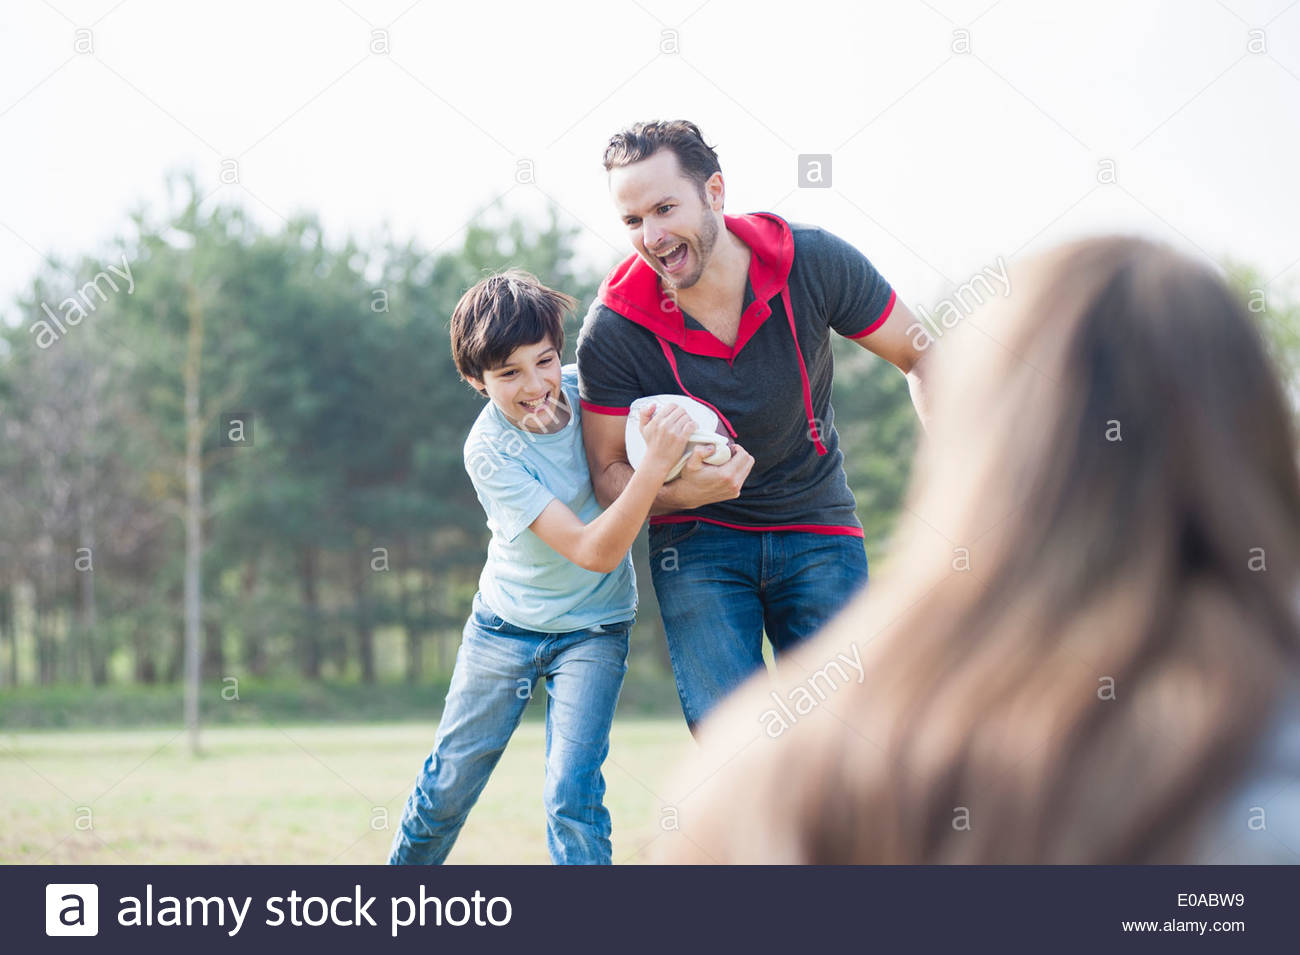 Father and son practicing rugby tackle in park - Stock Image